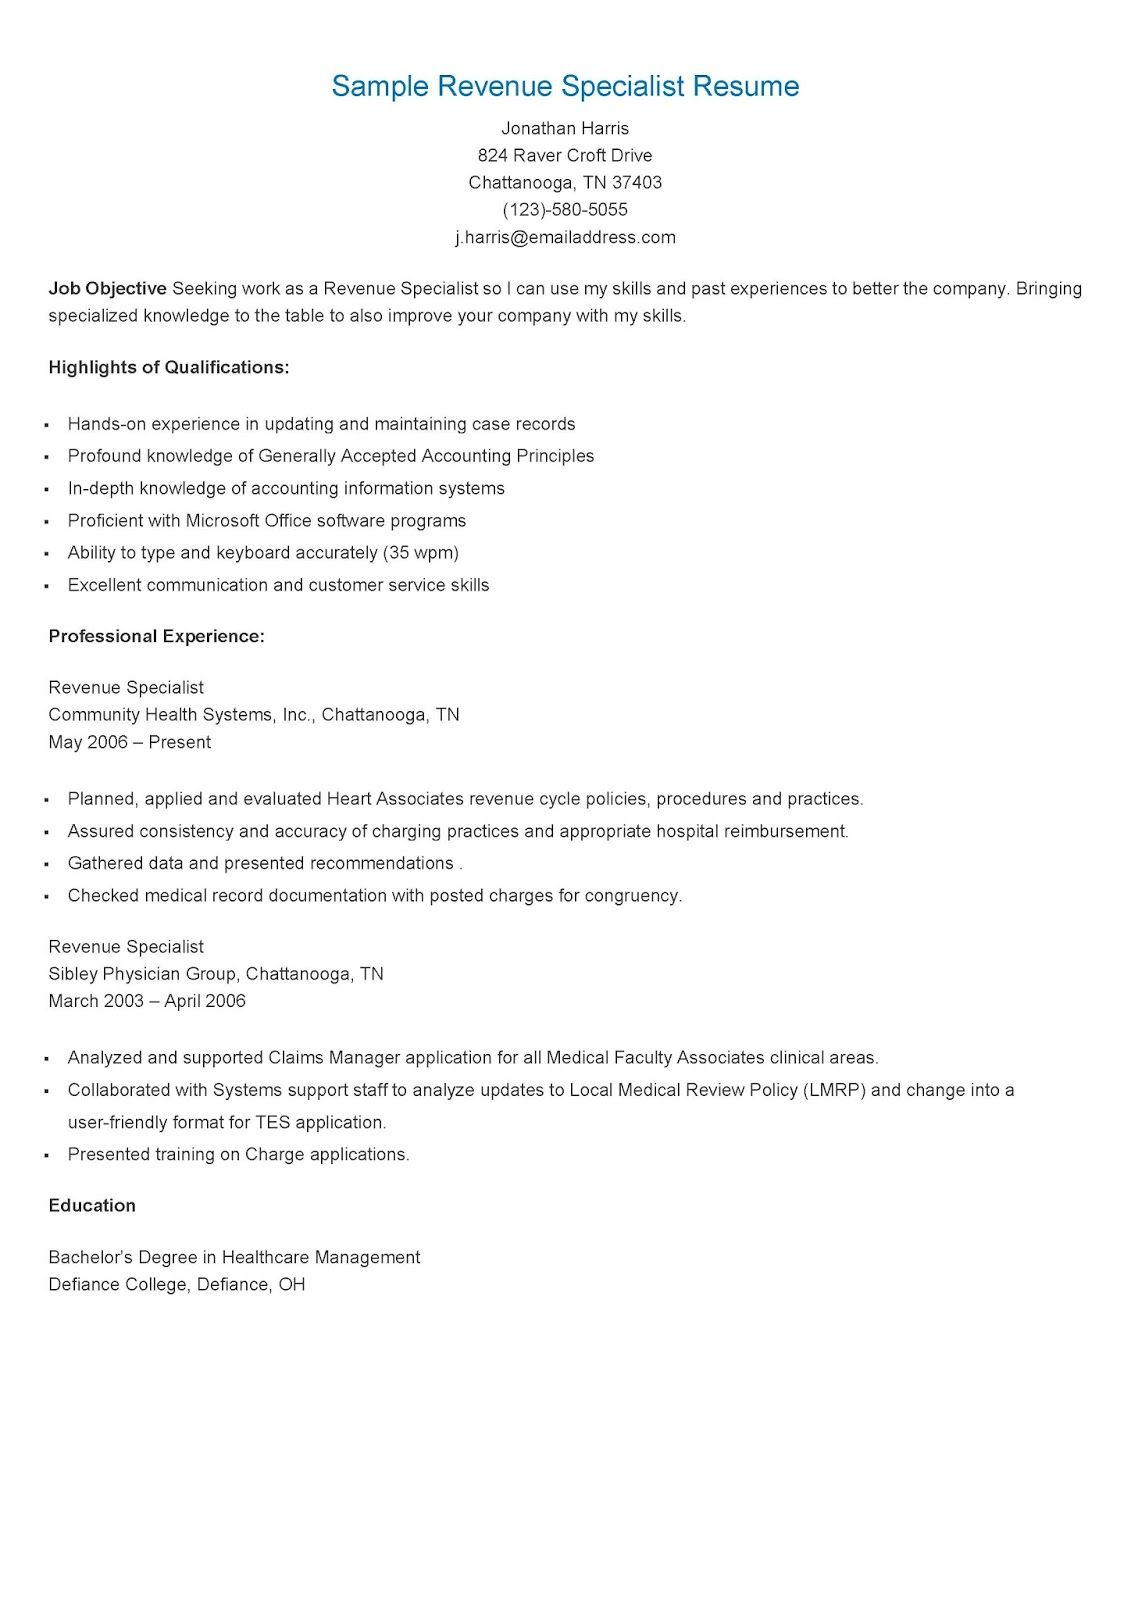 Sample Revenue Specialist Resume  Resame